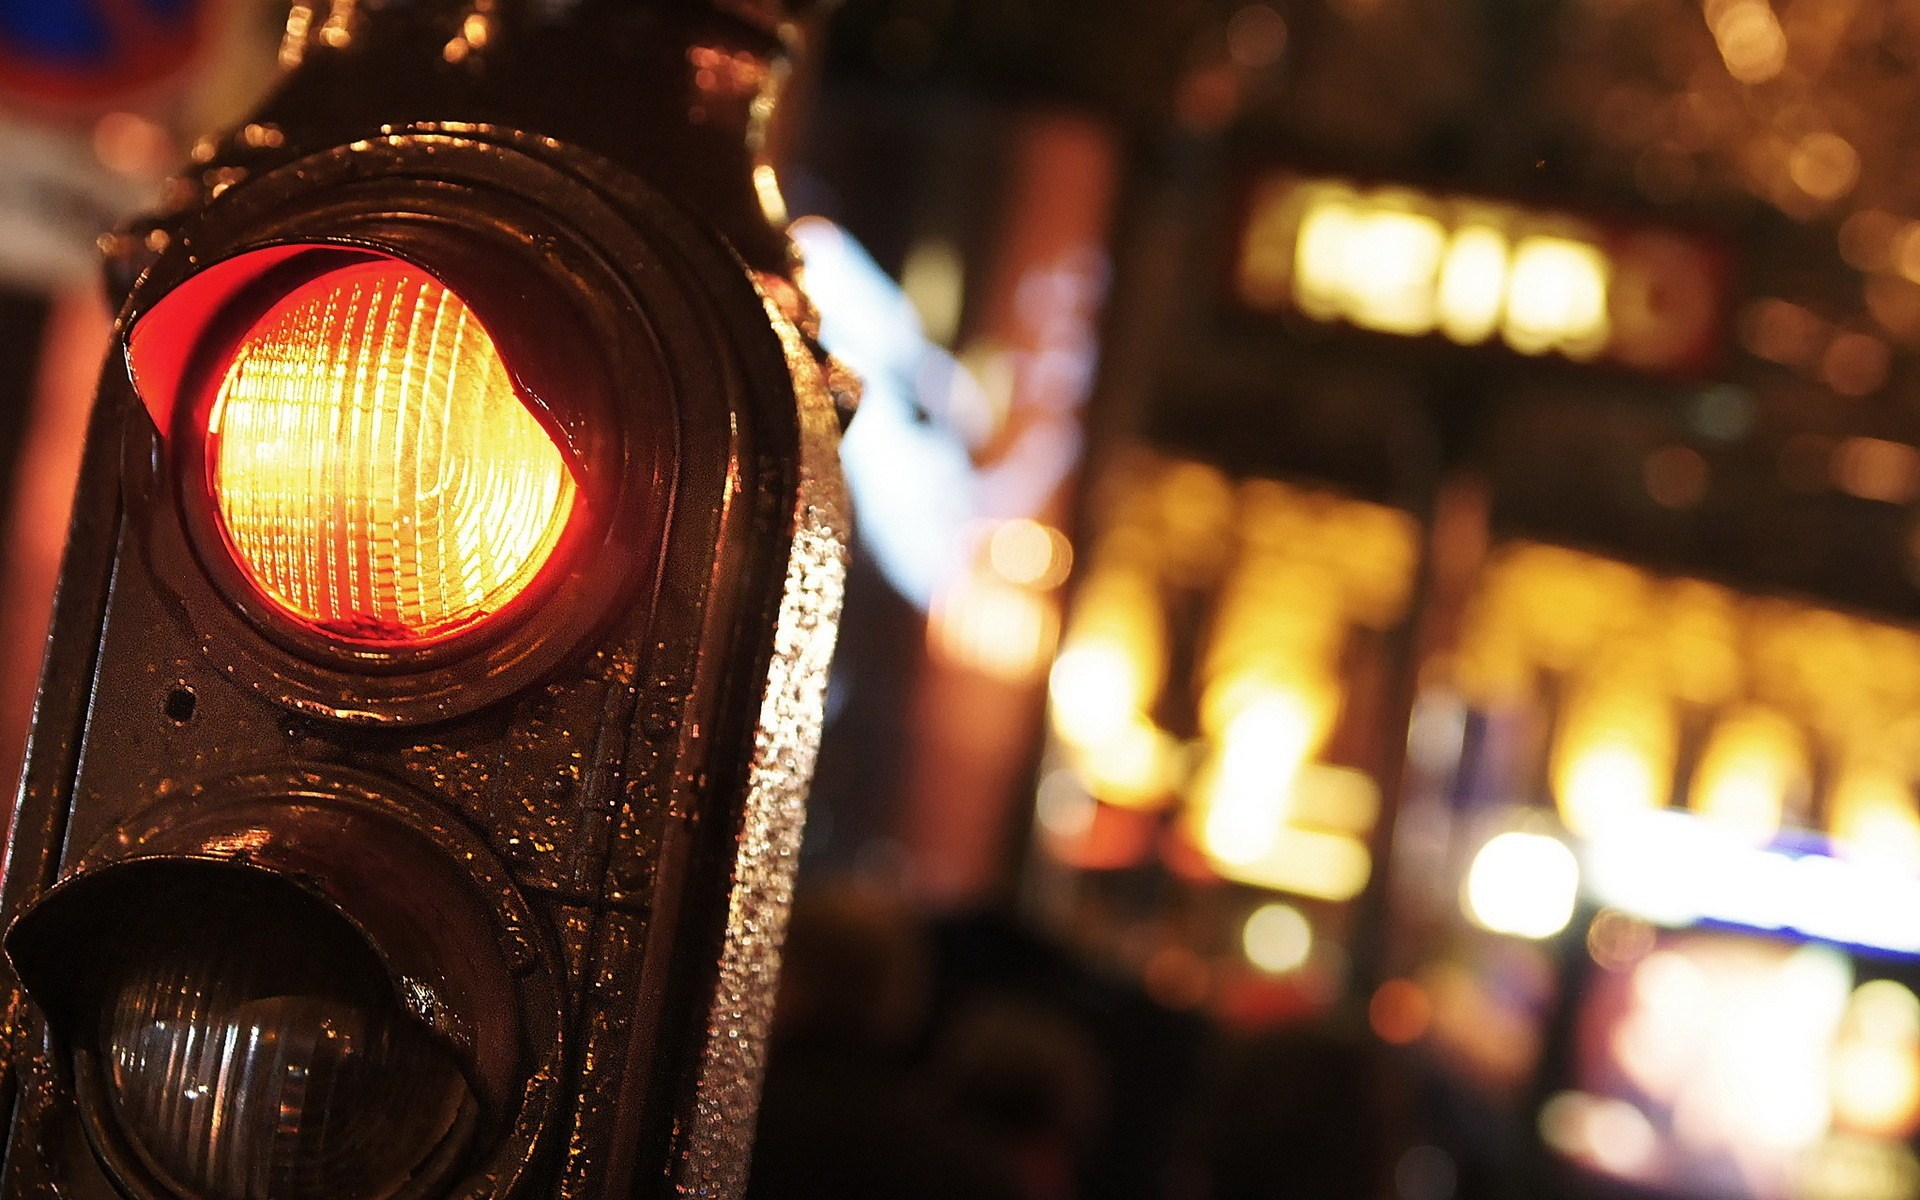 traffic-lights-night-city-close-up-photo